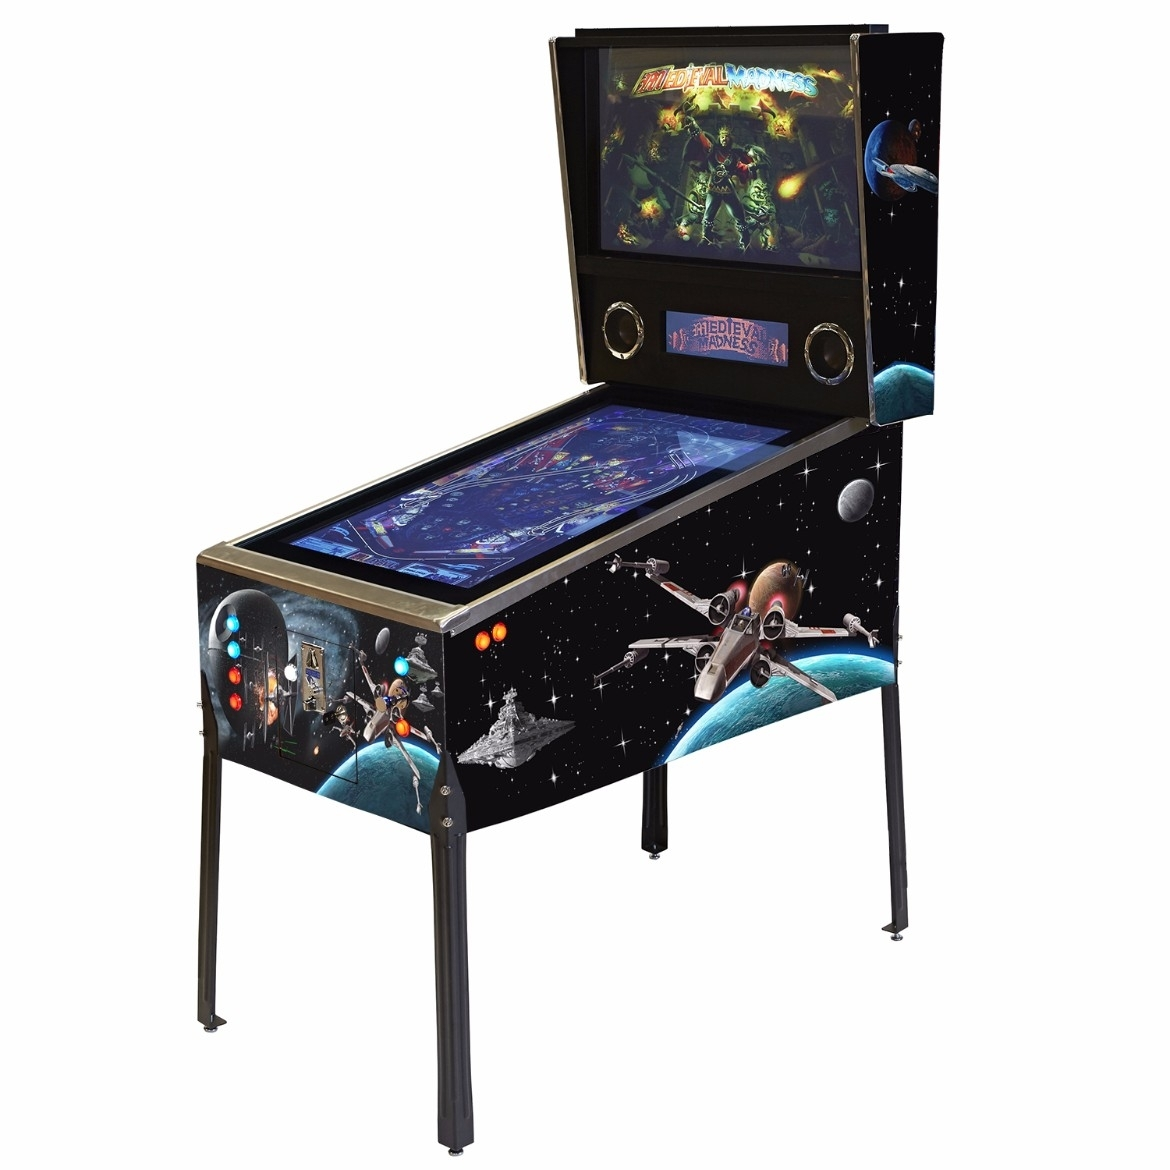 z bavn automat electronic pinball. Black Bedroom Furniture Sets. Home Design Ideas